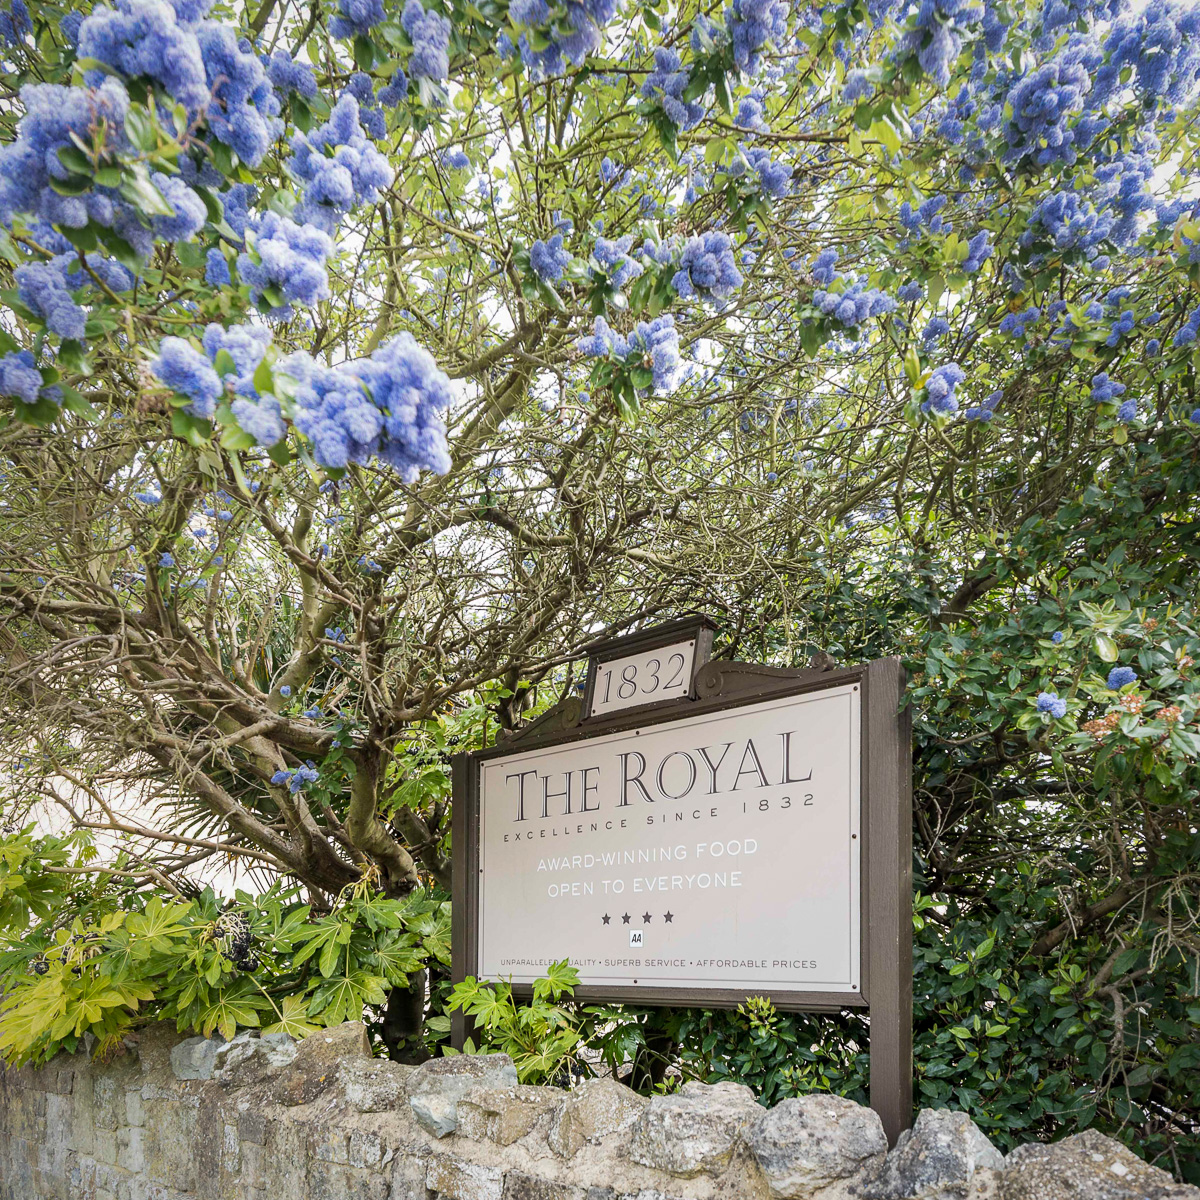 The Royal Hotel, Ceaonothus